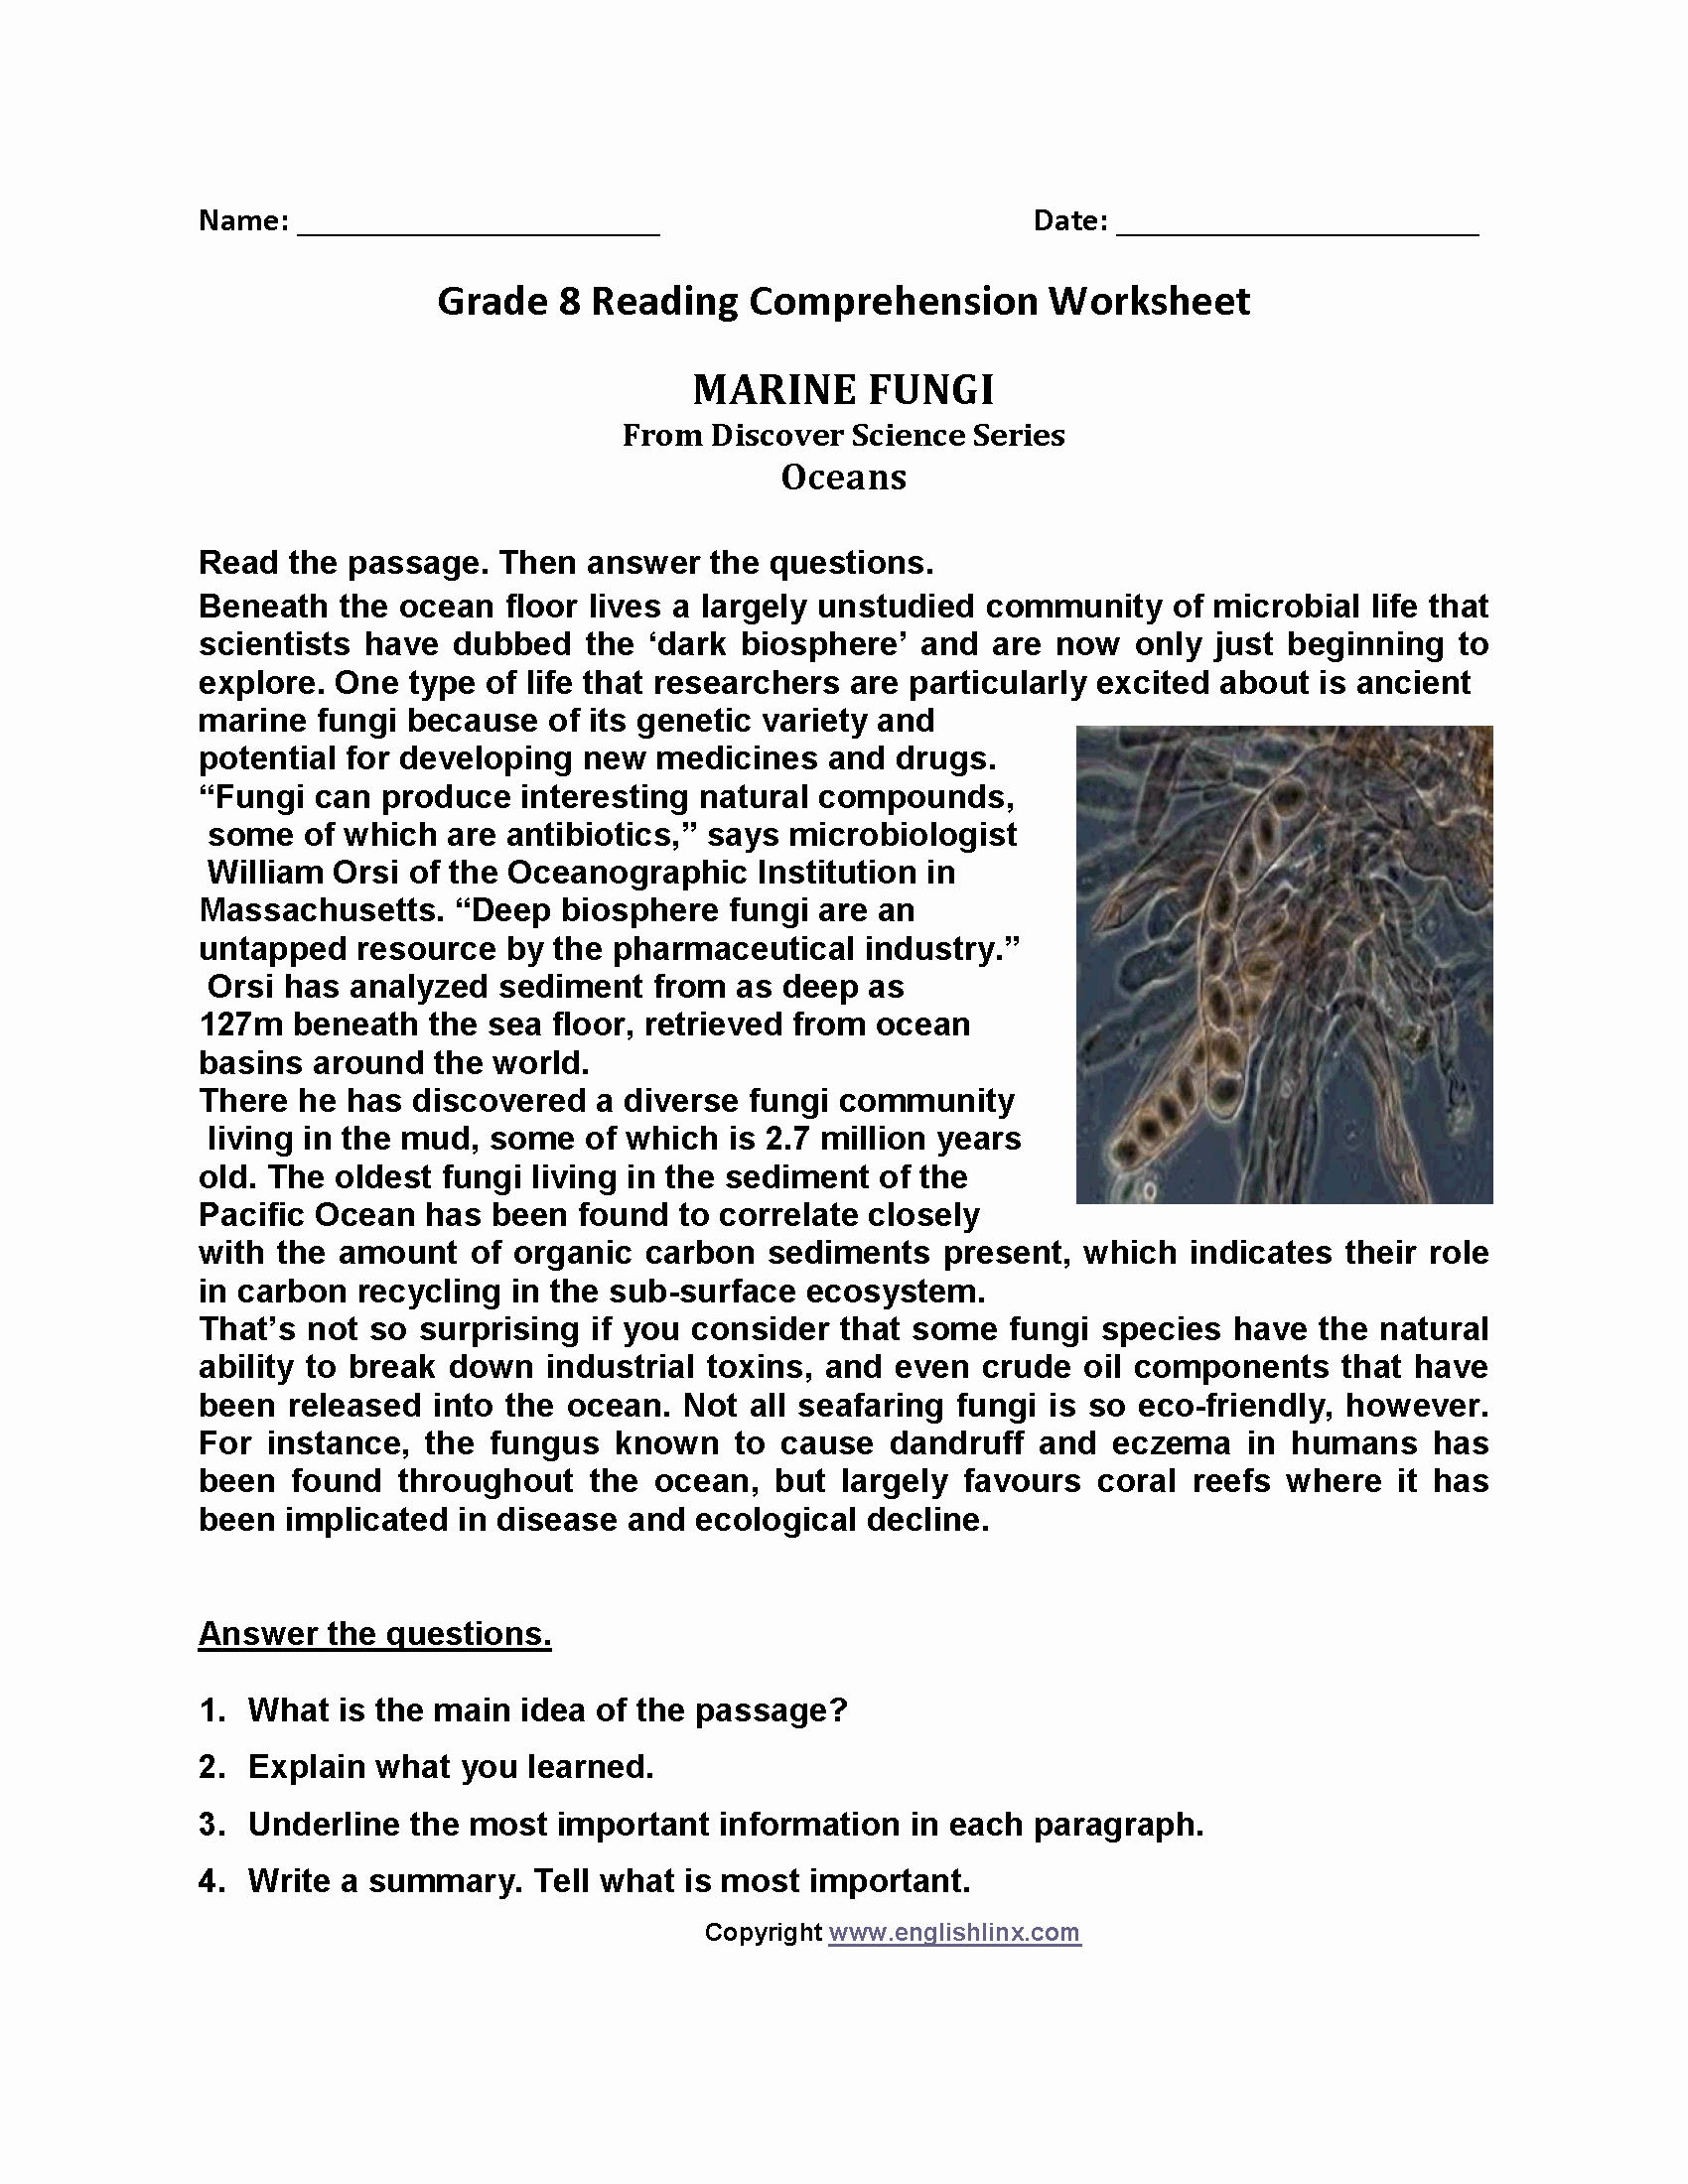 Grammar Worksheets for 8th Graders Beautiful 8th Grade Printable Worksheets that are Slobbery